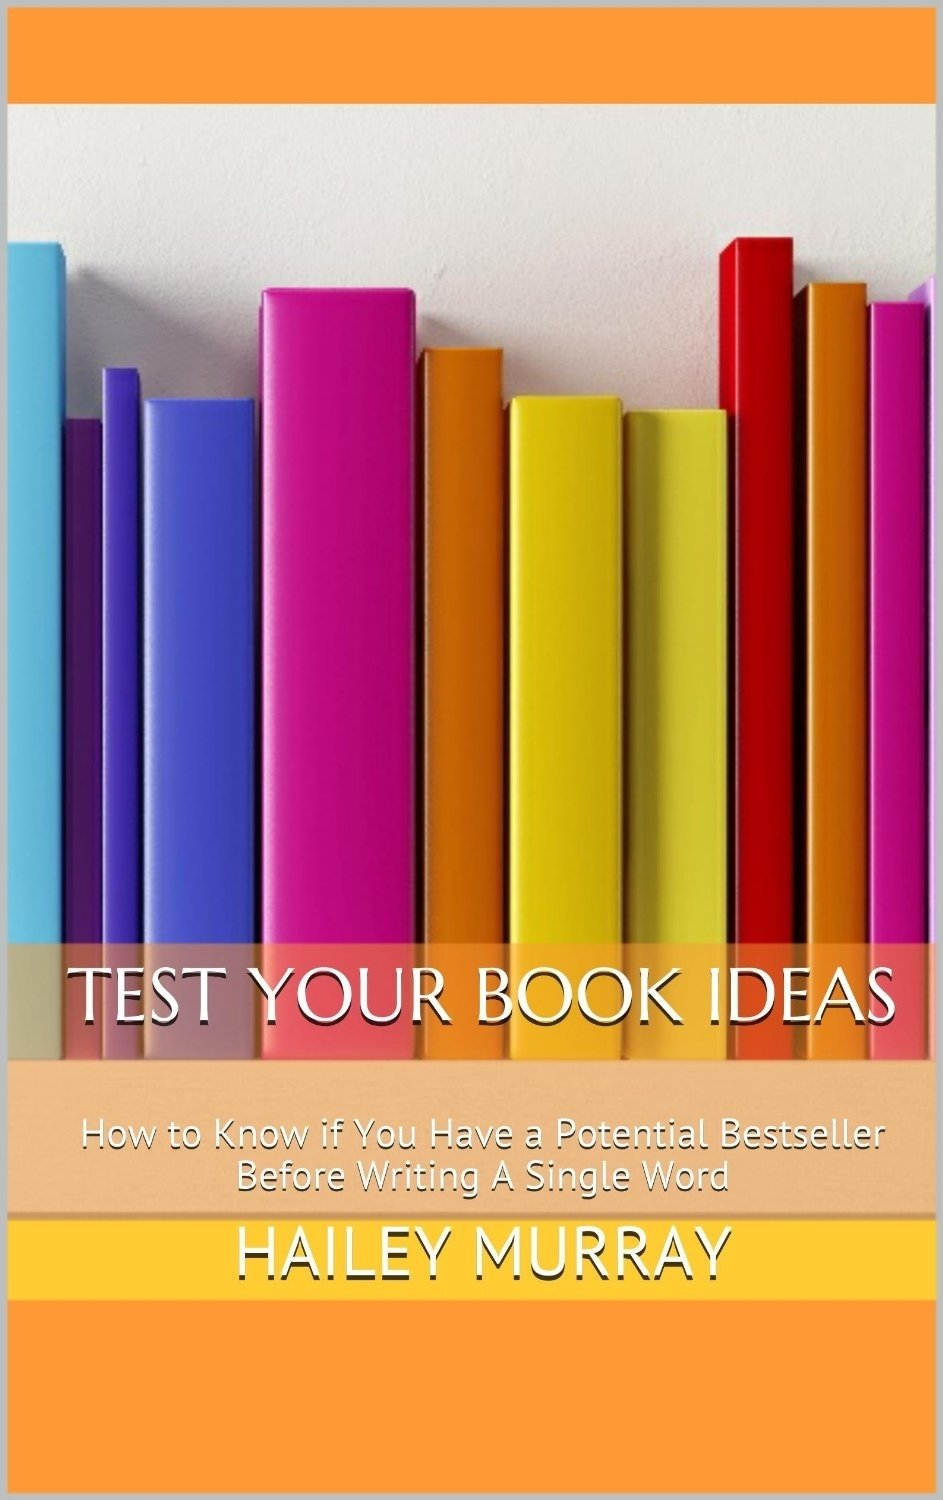 10 Amazing How To Sell A Book Idea test your book ideas how to know if you have a potential bestseller 2020